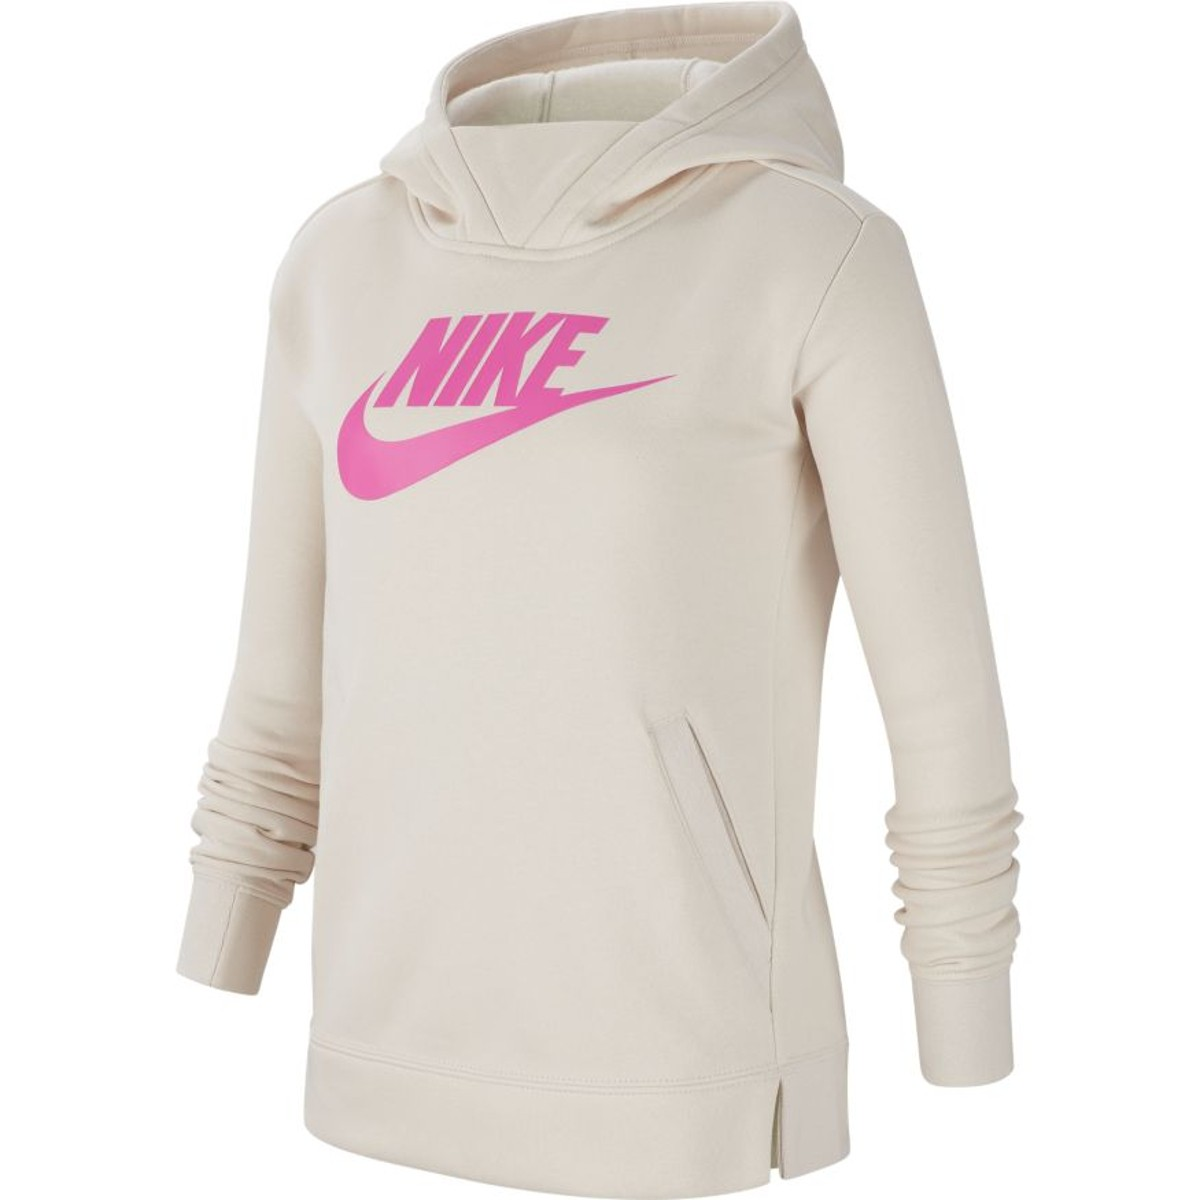 SWEAT NIKE JUNIOR FILLE A CAPUCHE NIKE Junior